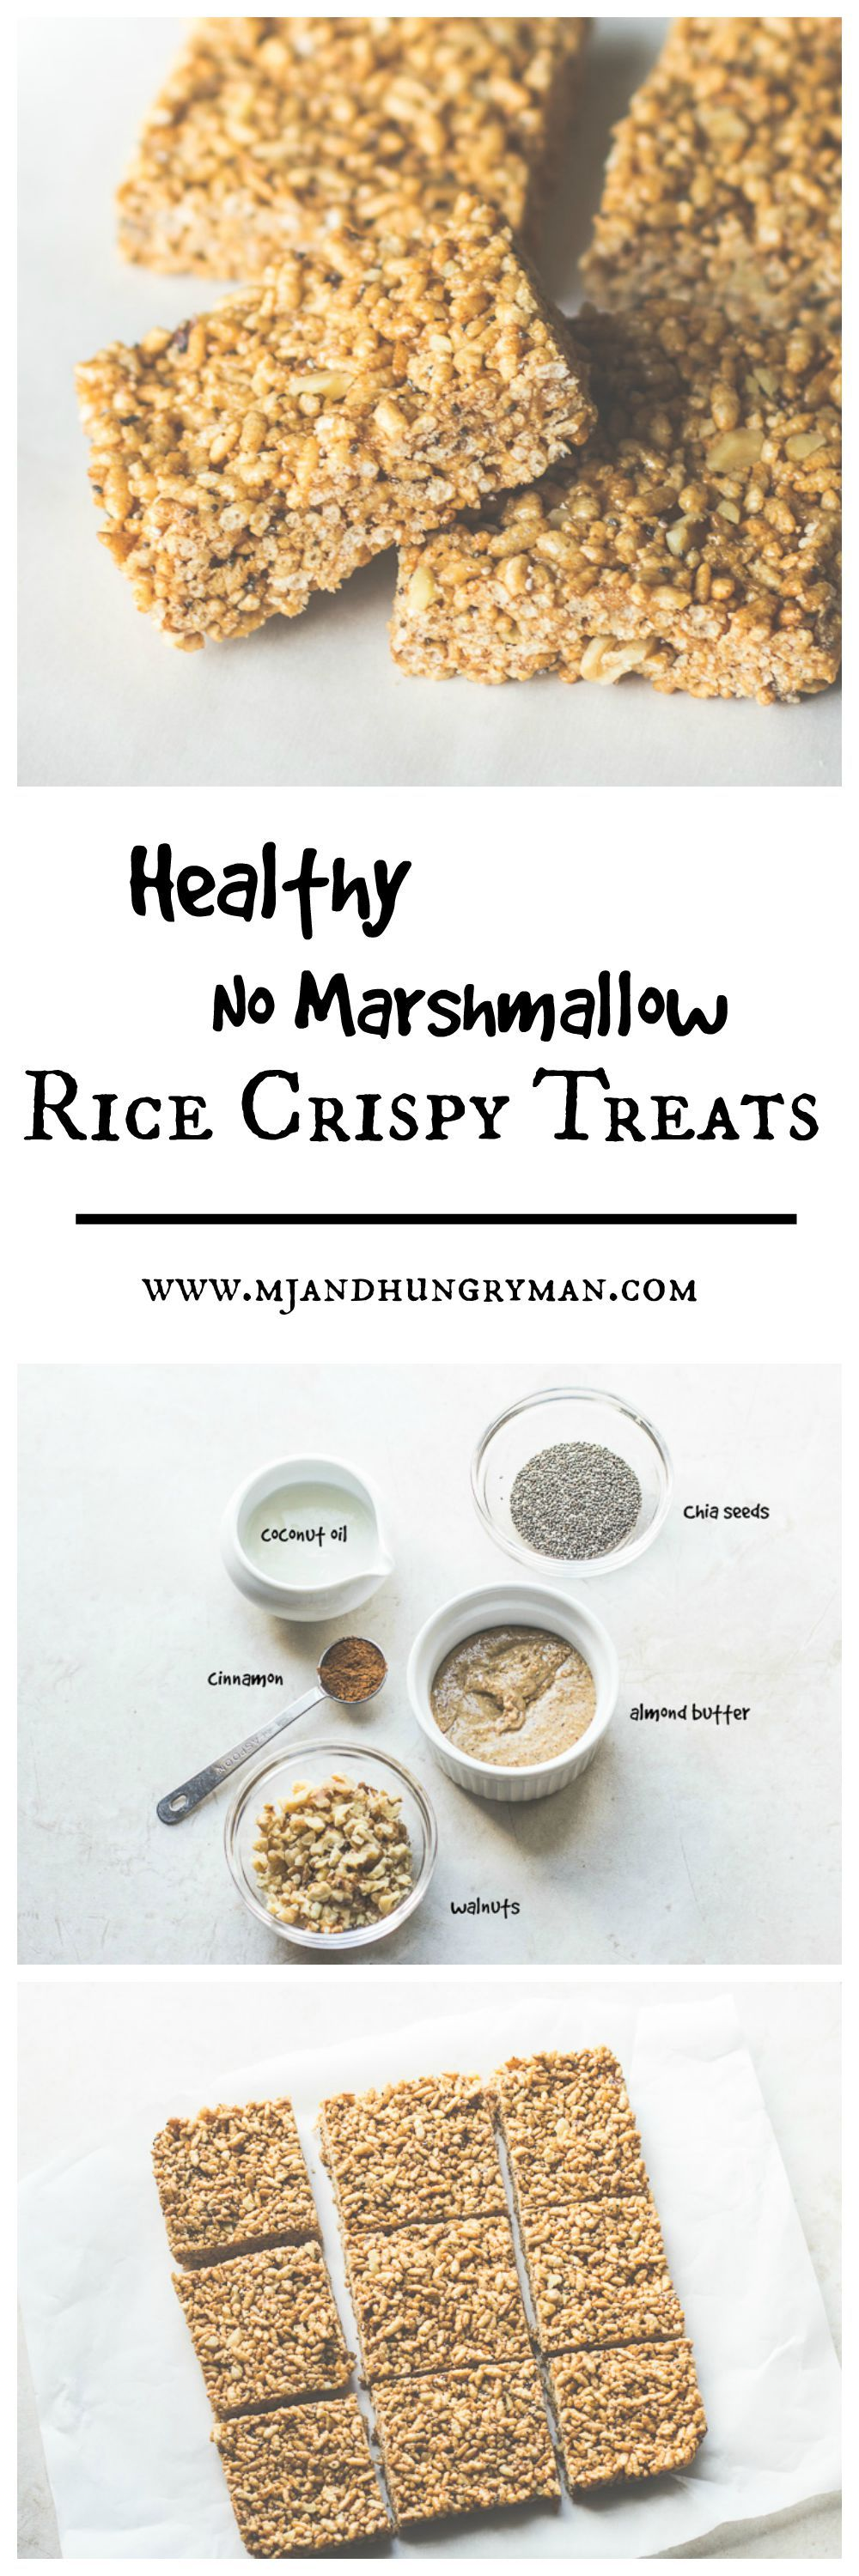 Healthy No Marshmallow Rice Crispy Treats